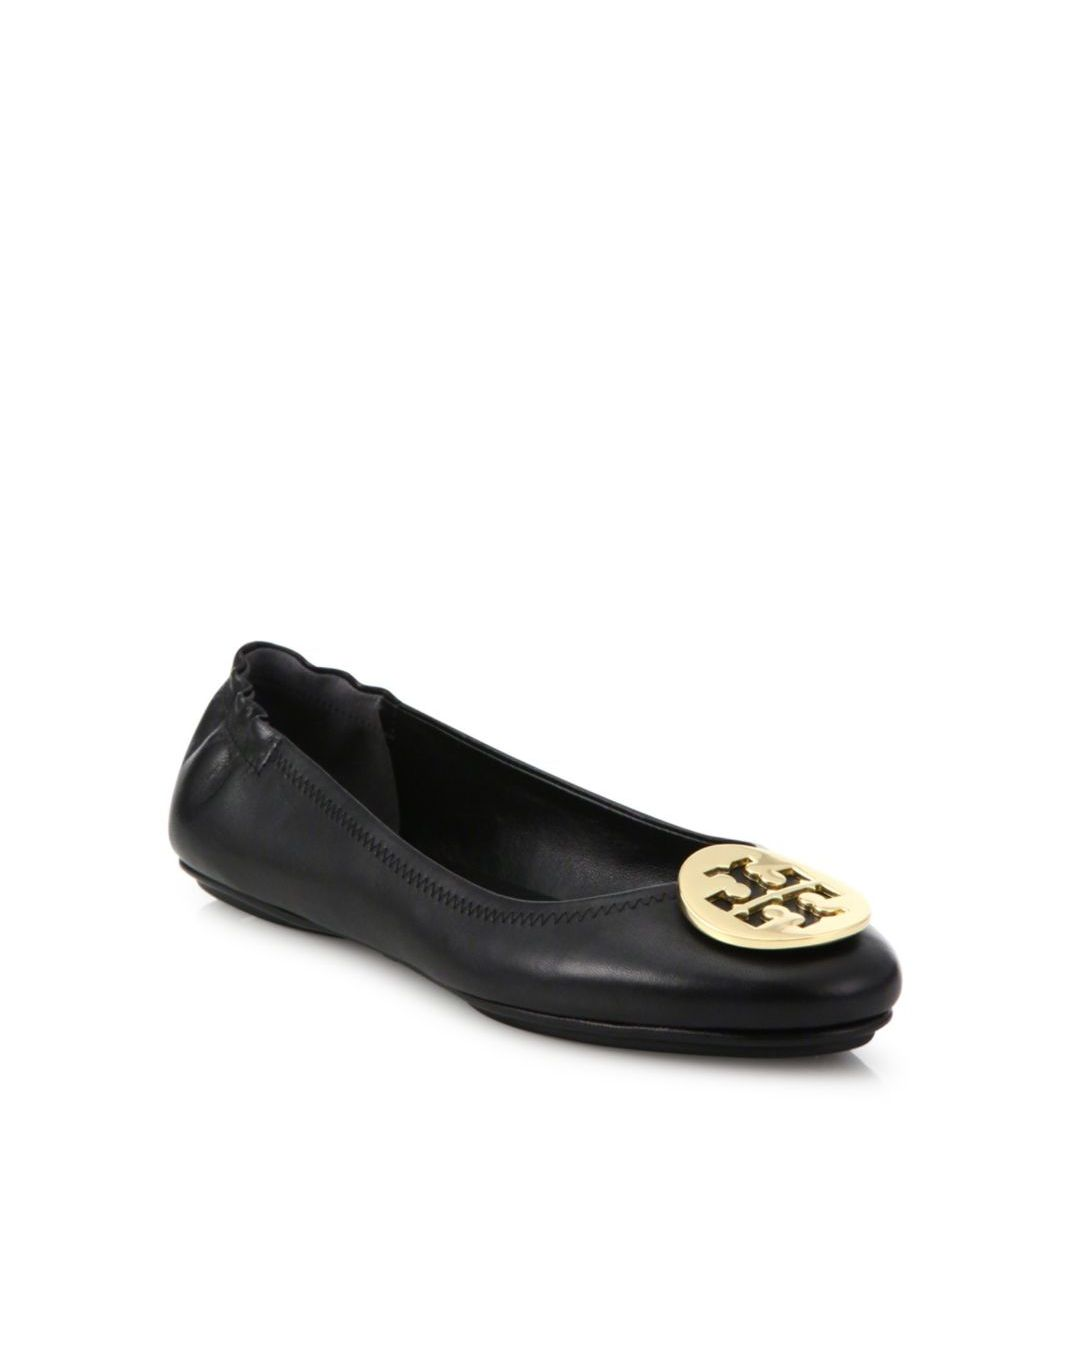 bba504fe100e8 Tory Burch Minnie Reviews